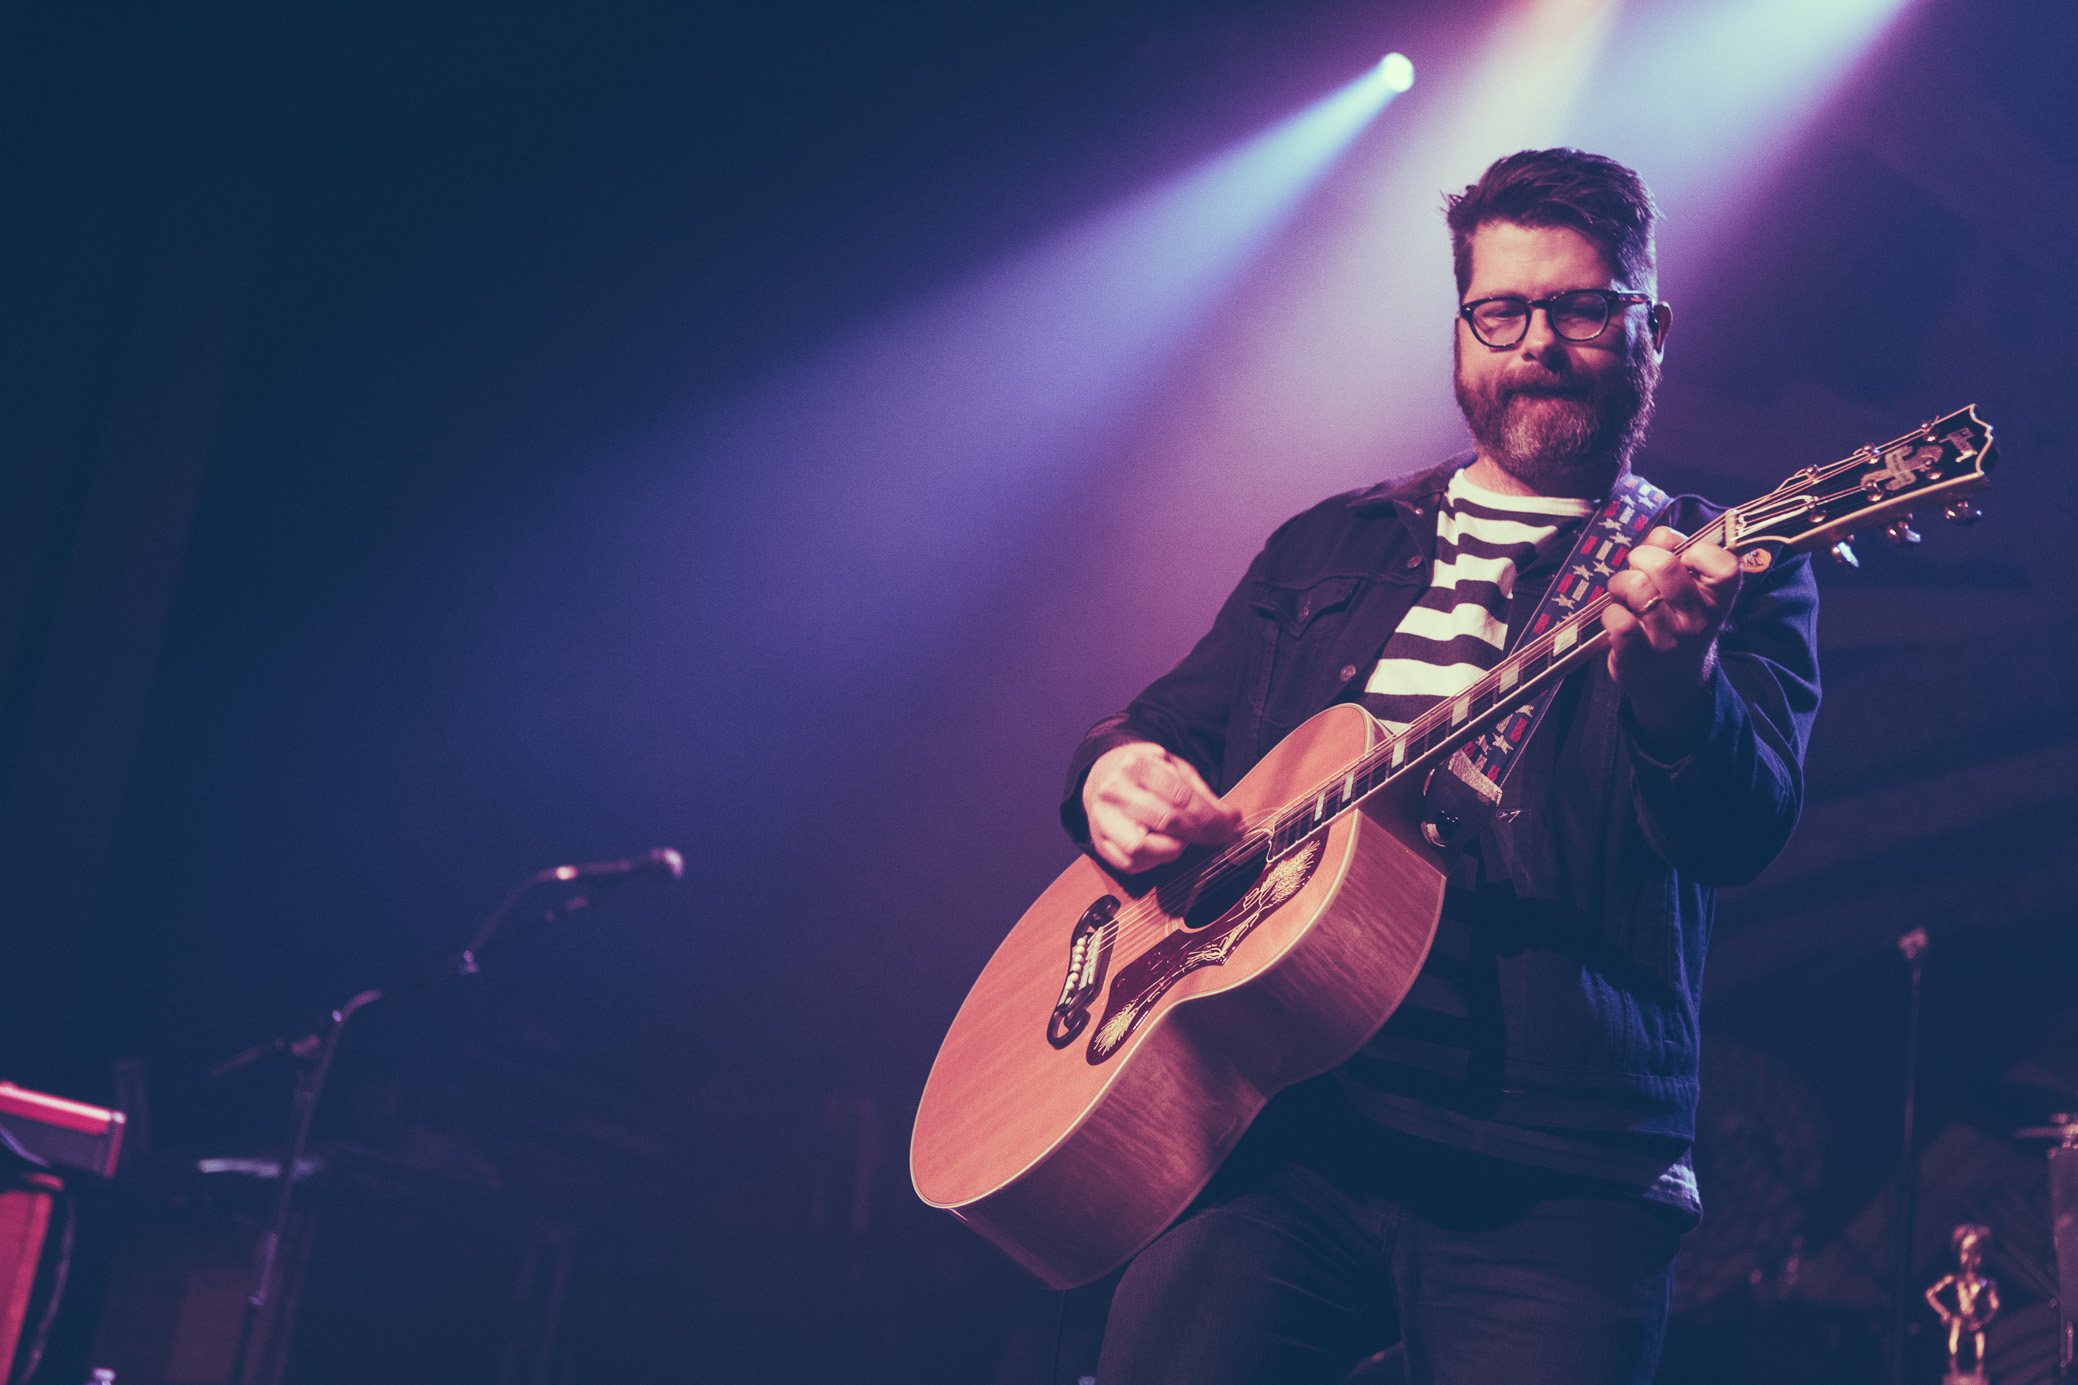 Colin Meloy of The Decemberists performs at Iron City in Birmingham, Alabama on September 21st, 2018. (Photo by David A. Smith/DSmithScenes)